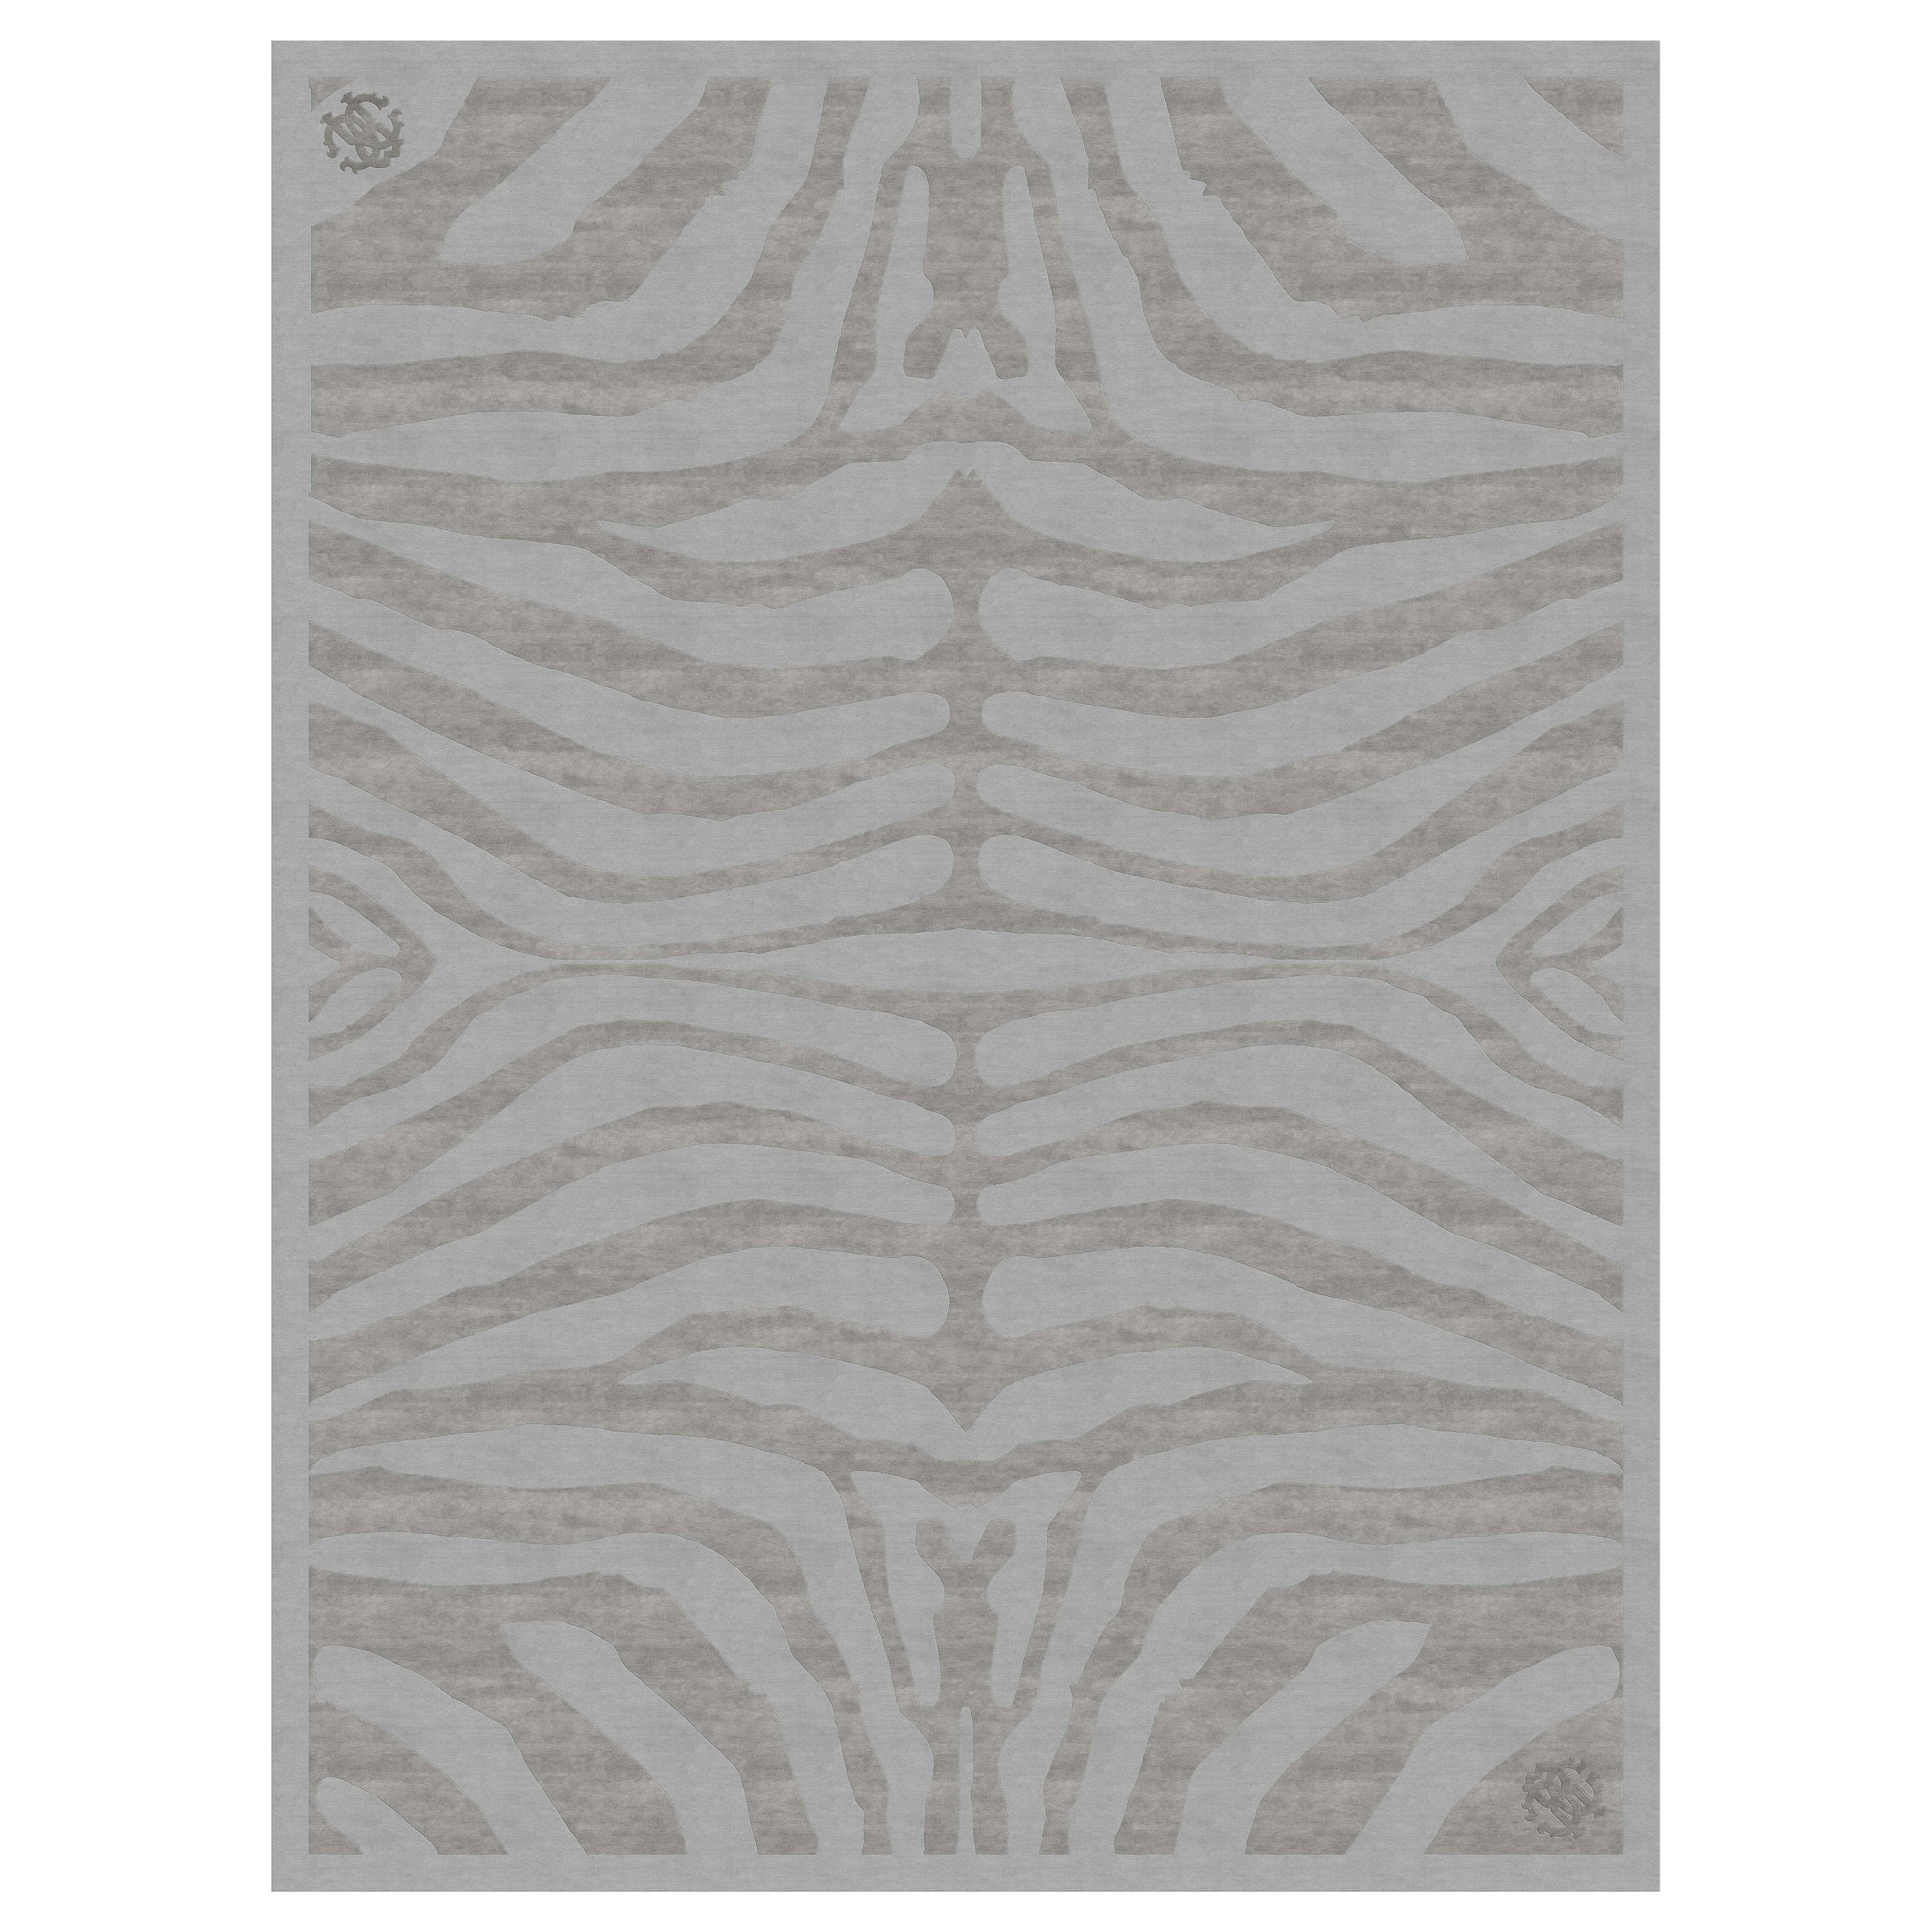 Cameron Hand Knotted Rug in Wool and Viscose by Roberto Cavalli Home Interiors